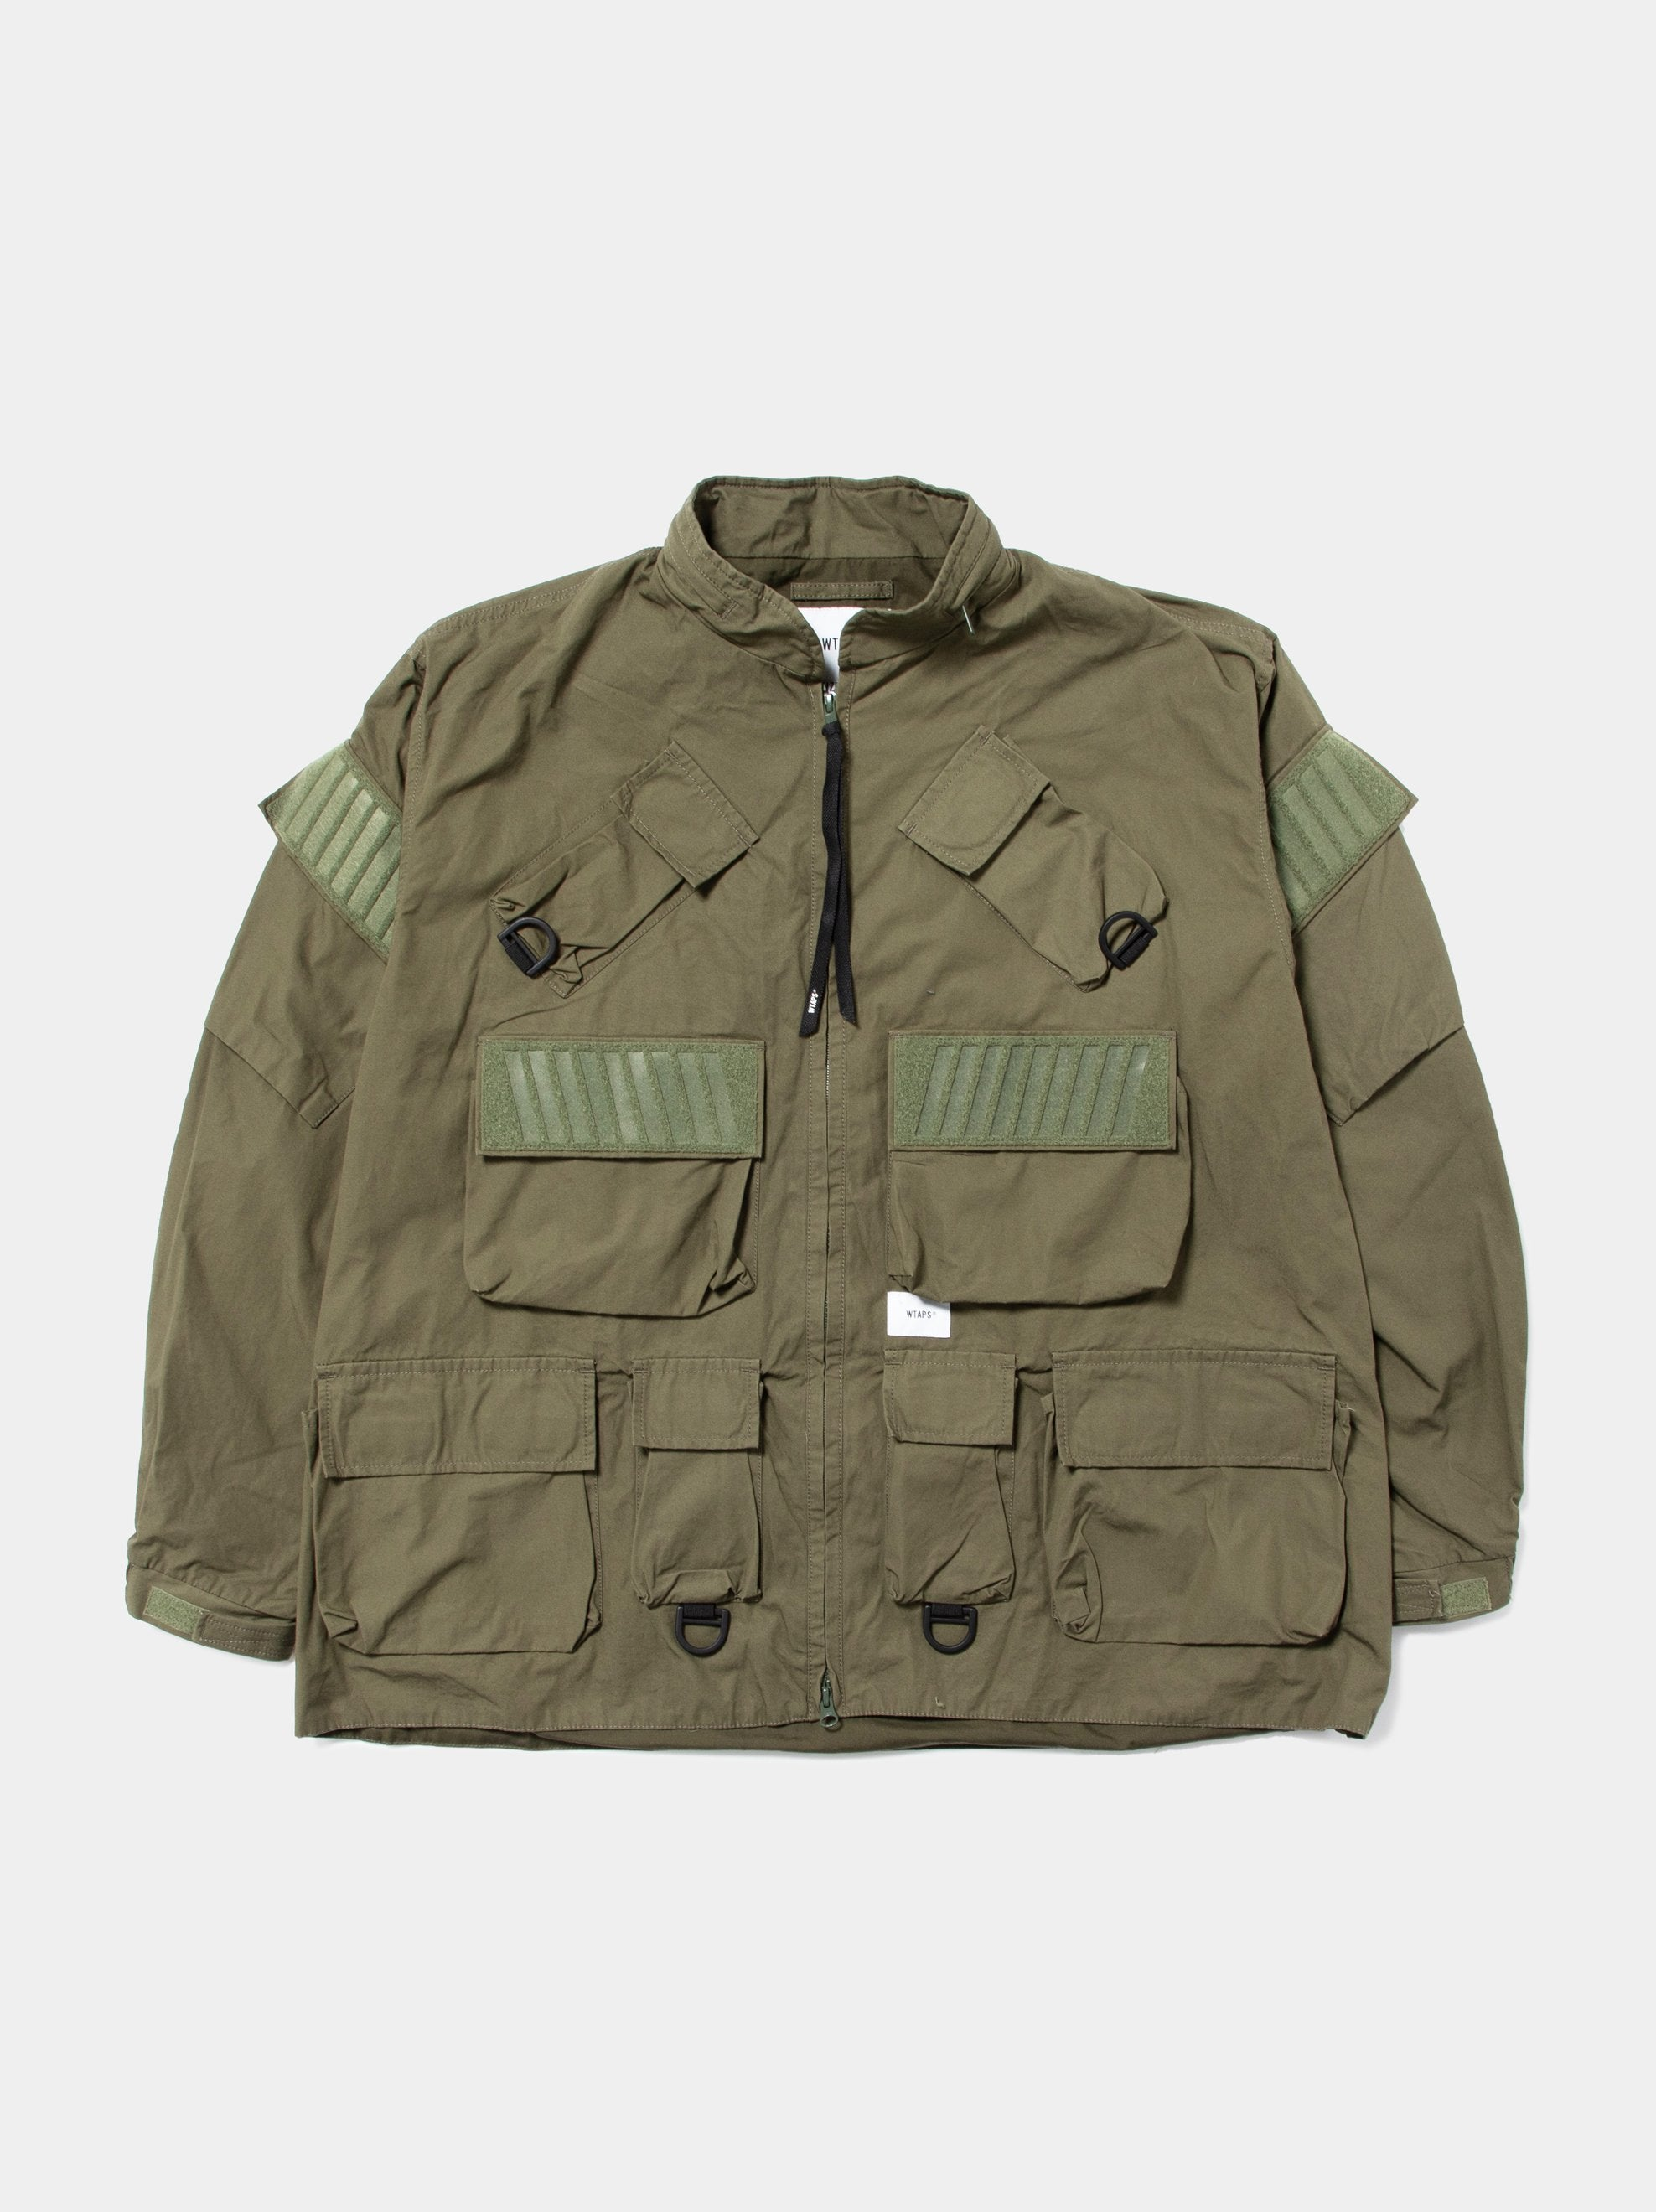 Olive Drab Modular / Jacket. Cotton. Weather 1